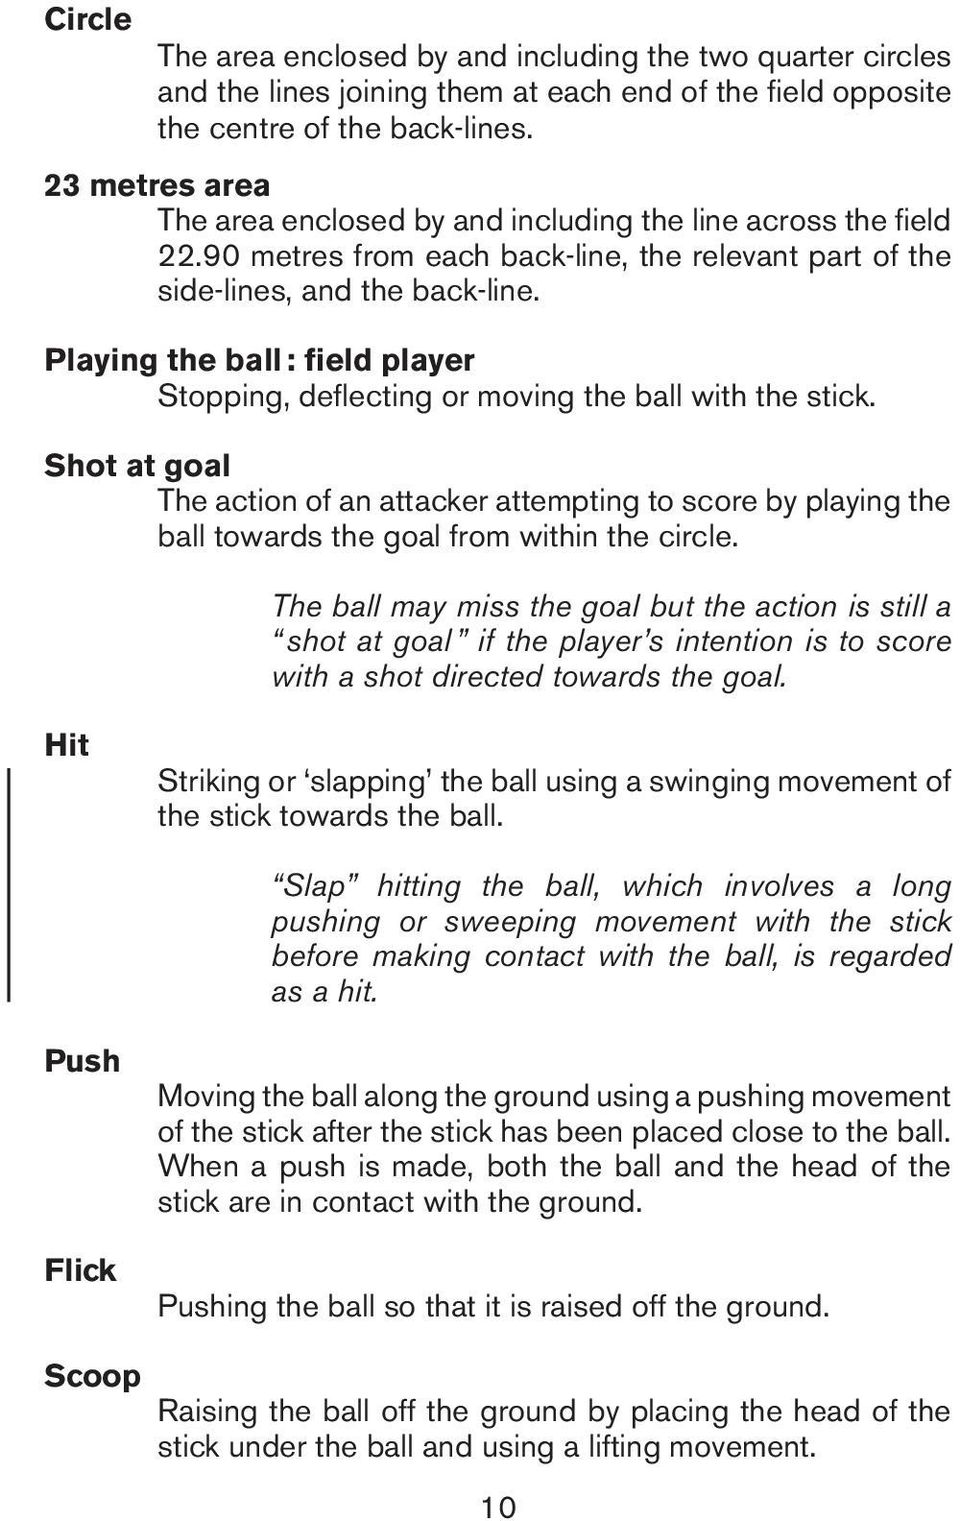 Plying the ll : field plyer Stopping, deflecting or moving the ll with the stick. Shot t gol The ction of n ttcker ttempting to score y plying the ll towrds the gol from within the circle.